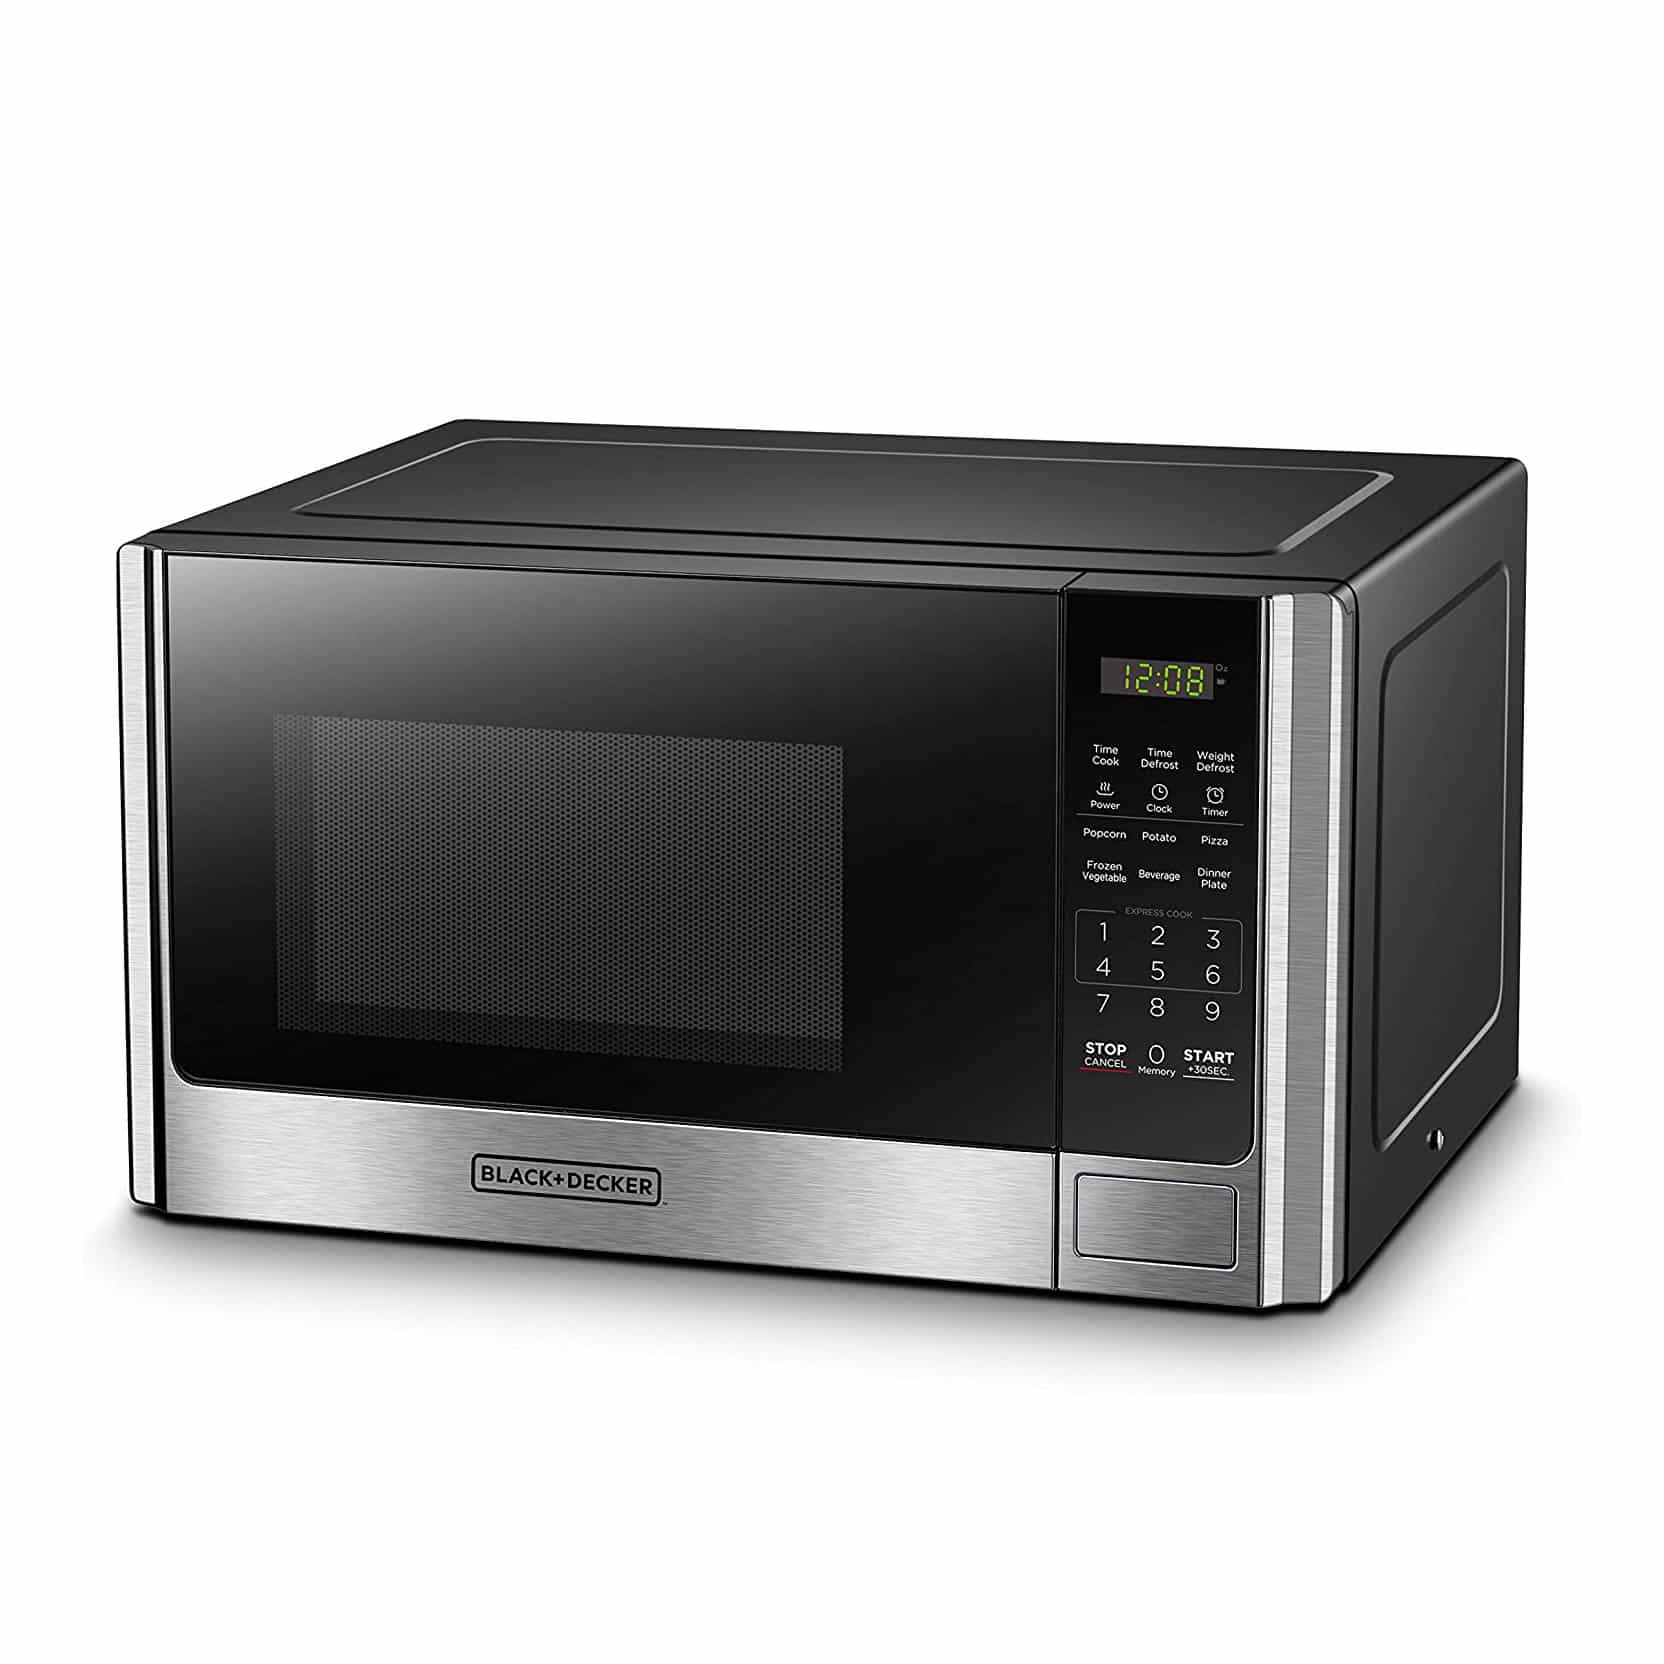 BLACK+DECKER Digital Microwave Oven